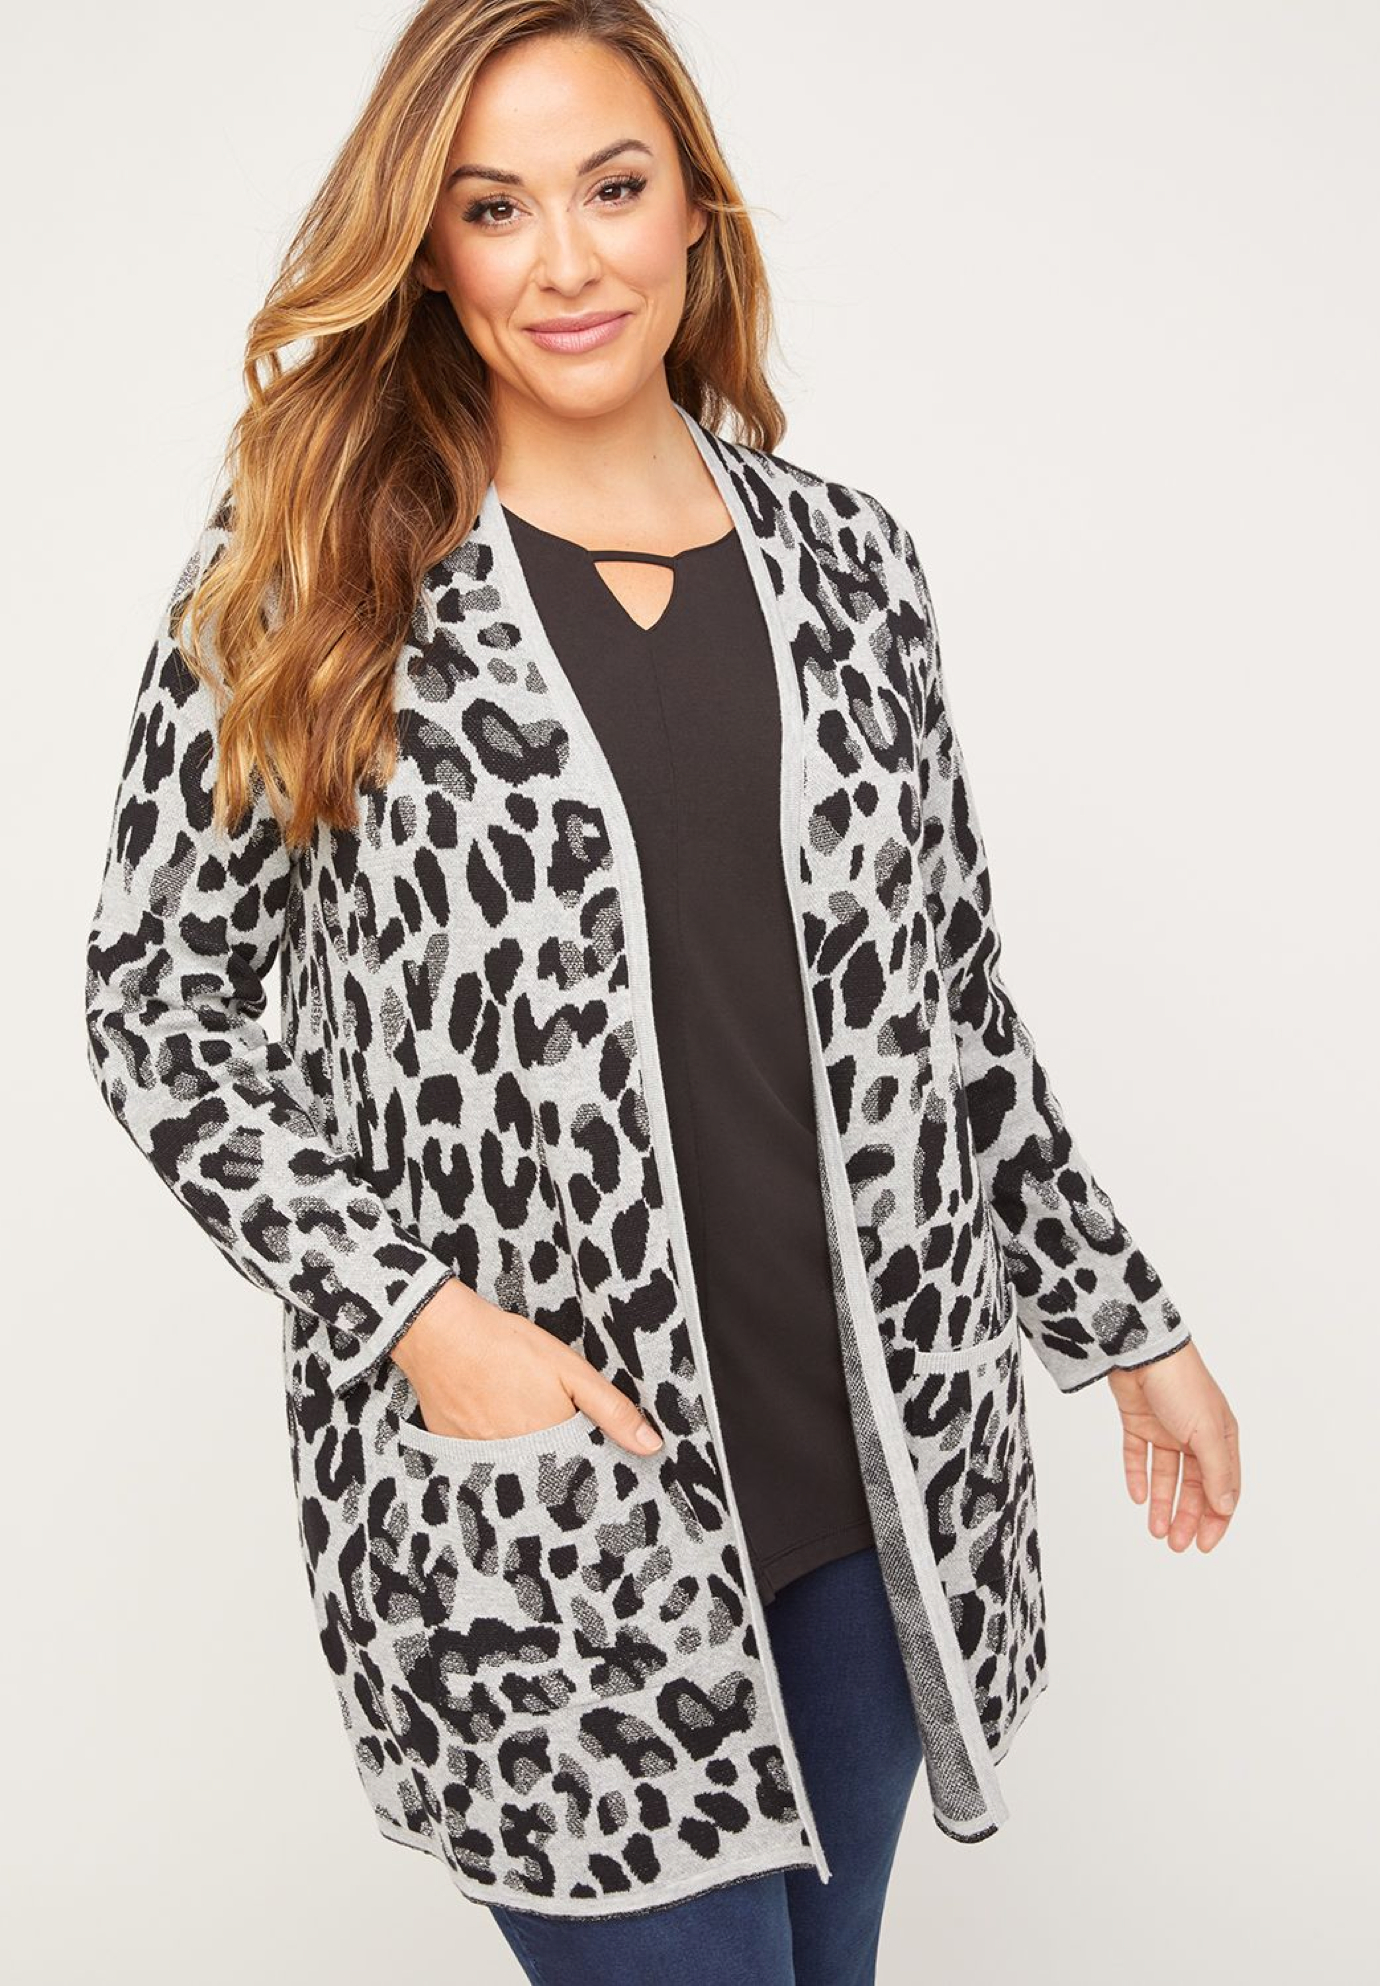 Sparkling Animal Print Cardigan (with Pockets),